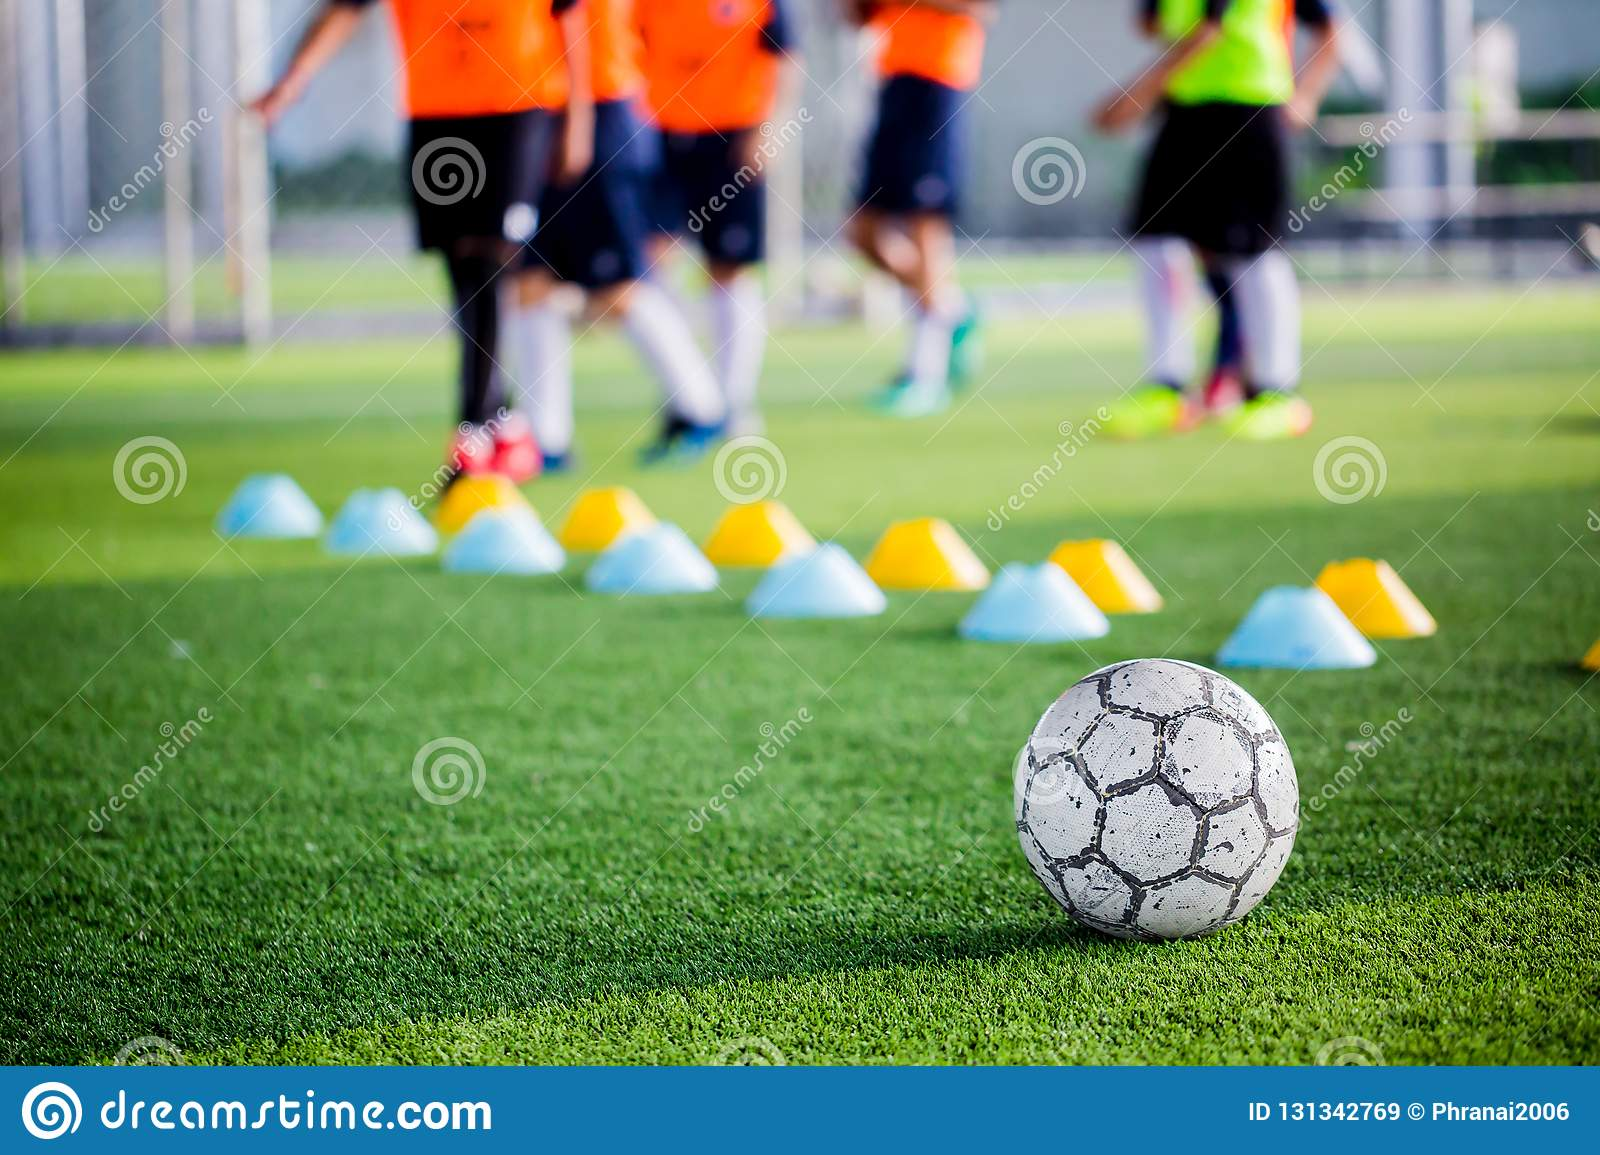 Soccer ball on green artificial turf with blurry of maker cones